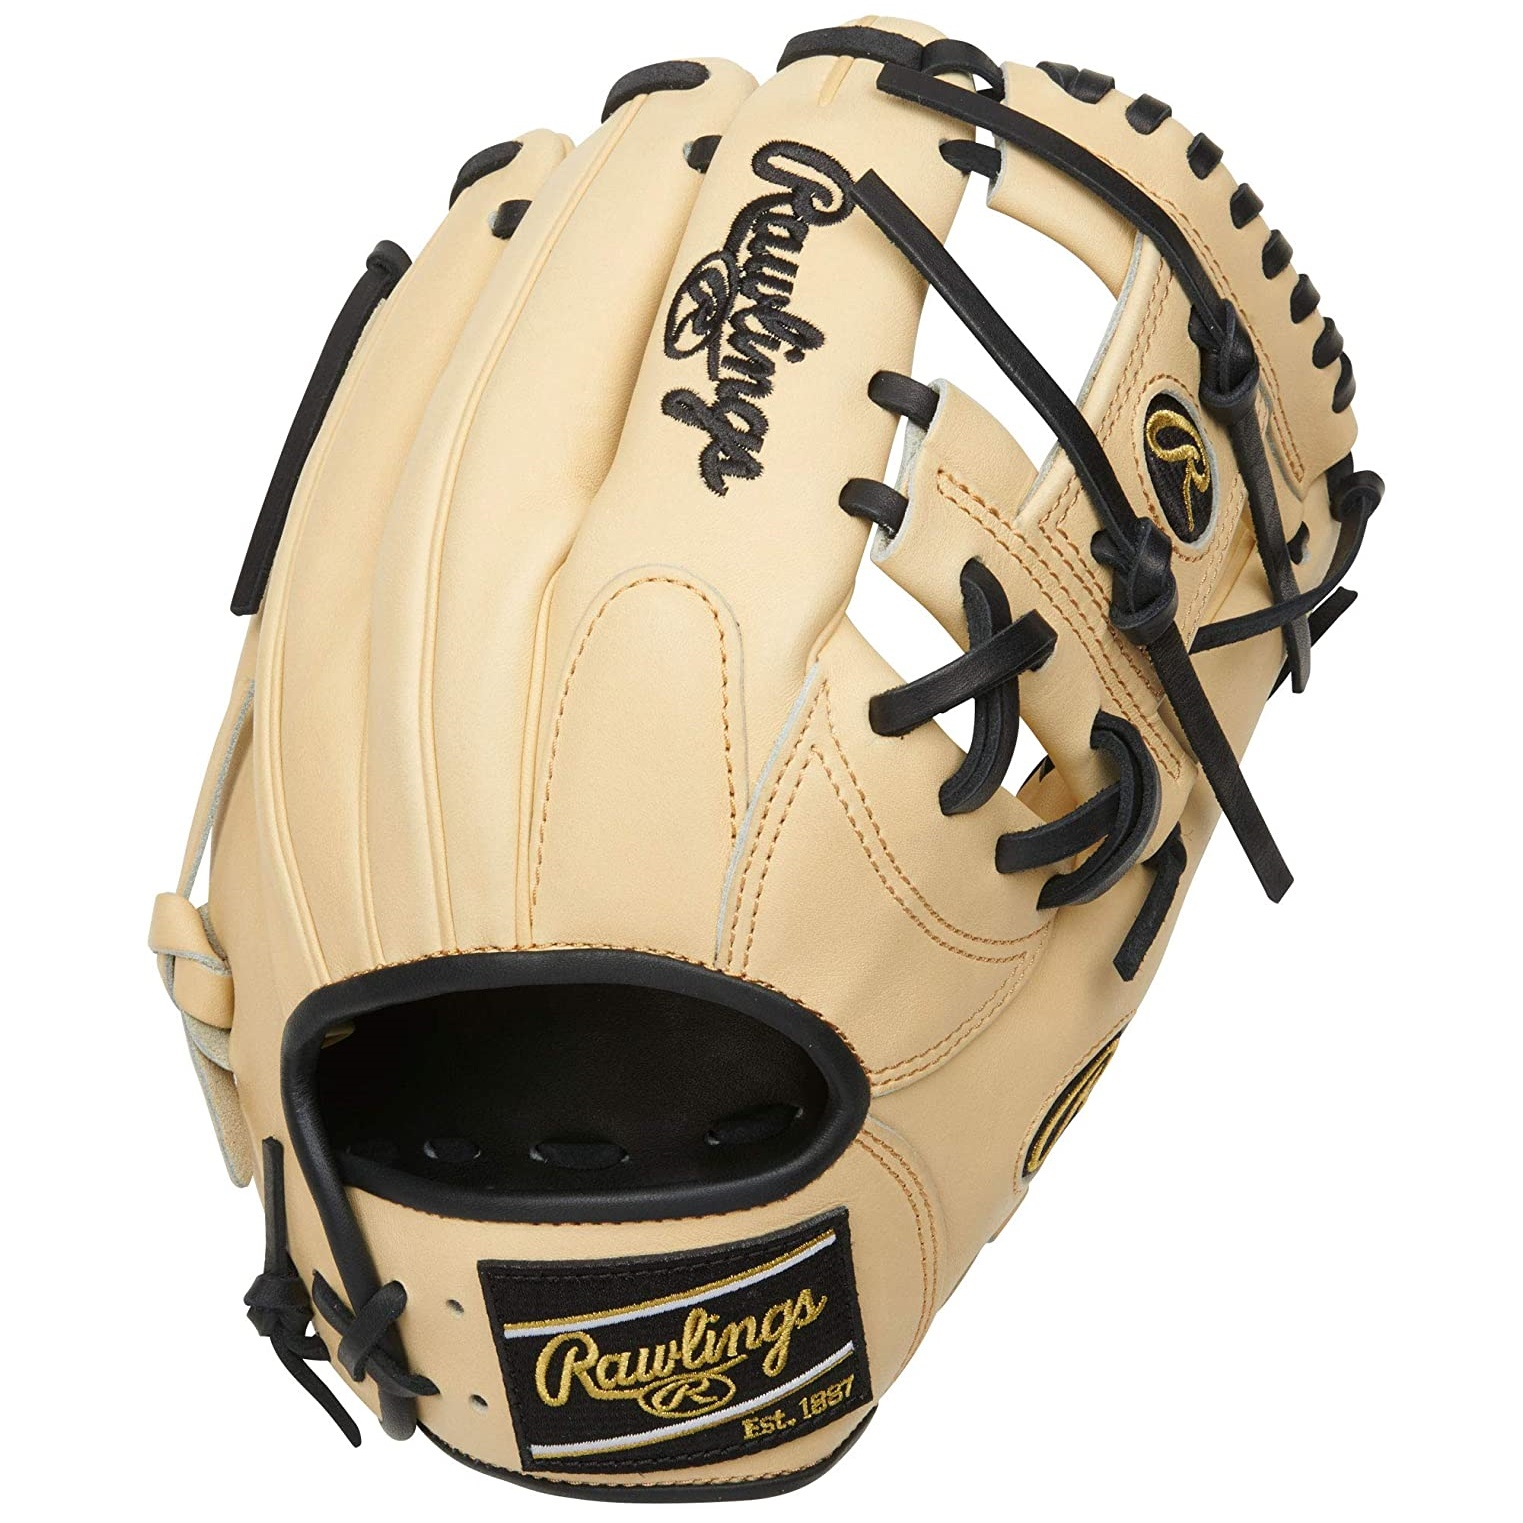 rawlings-heart-of-the-hide-baseball-glove-camel-black-i-web-11-5-inch-right-hand-throw PRONP4-2CB-RightHandThrow   The 2021 Heart of the Hide 11.5-inch I-web glove is constructed